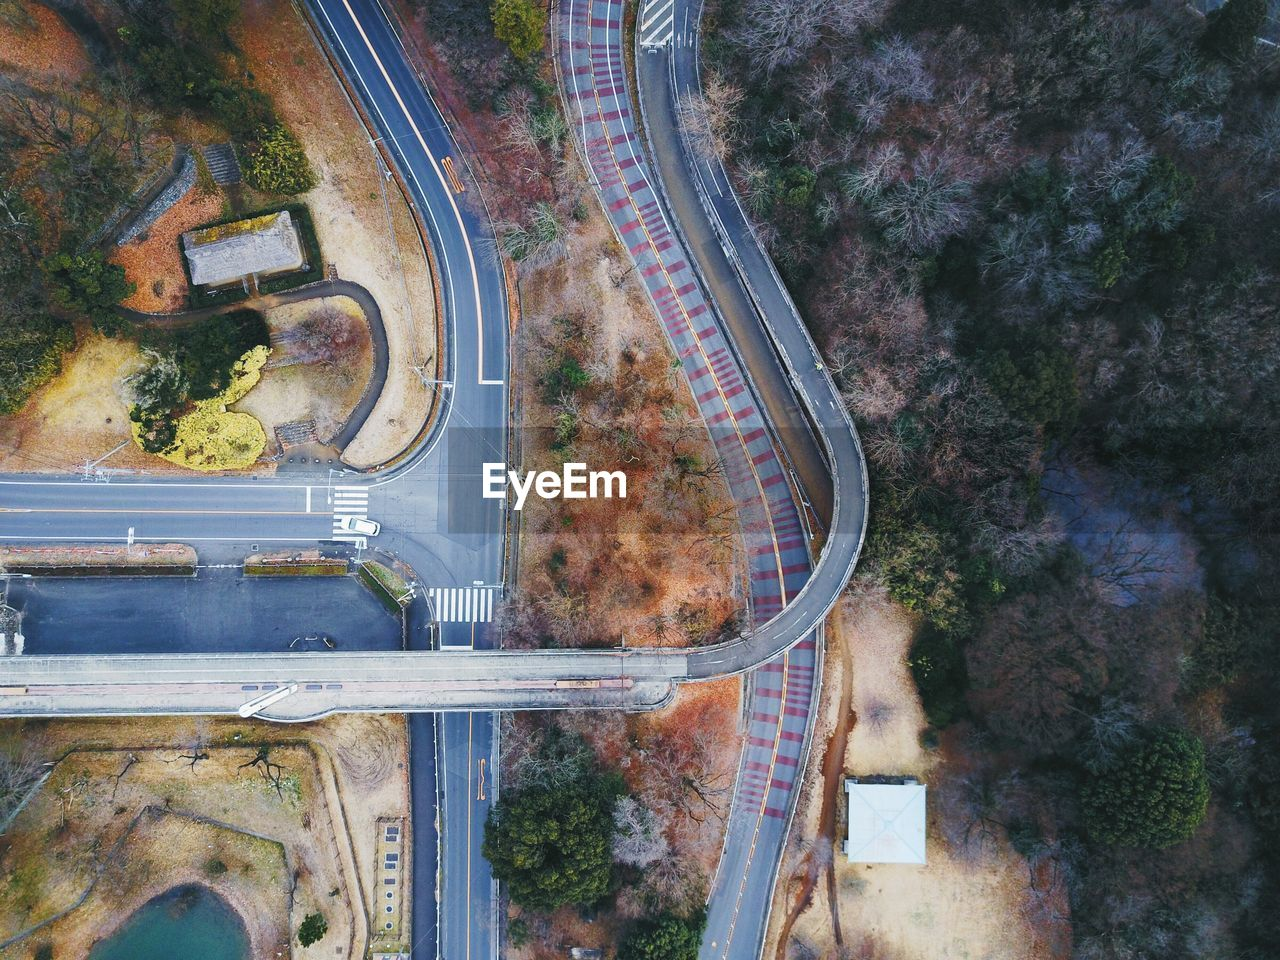 HIGH ANGLE VIEW OF ROAD BY BRIDGE IN CITY